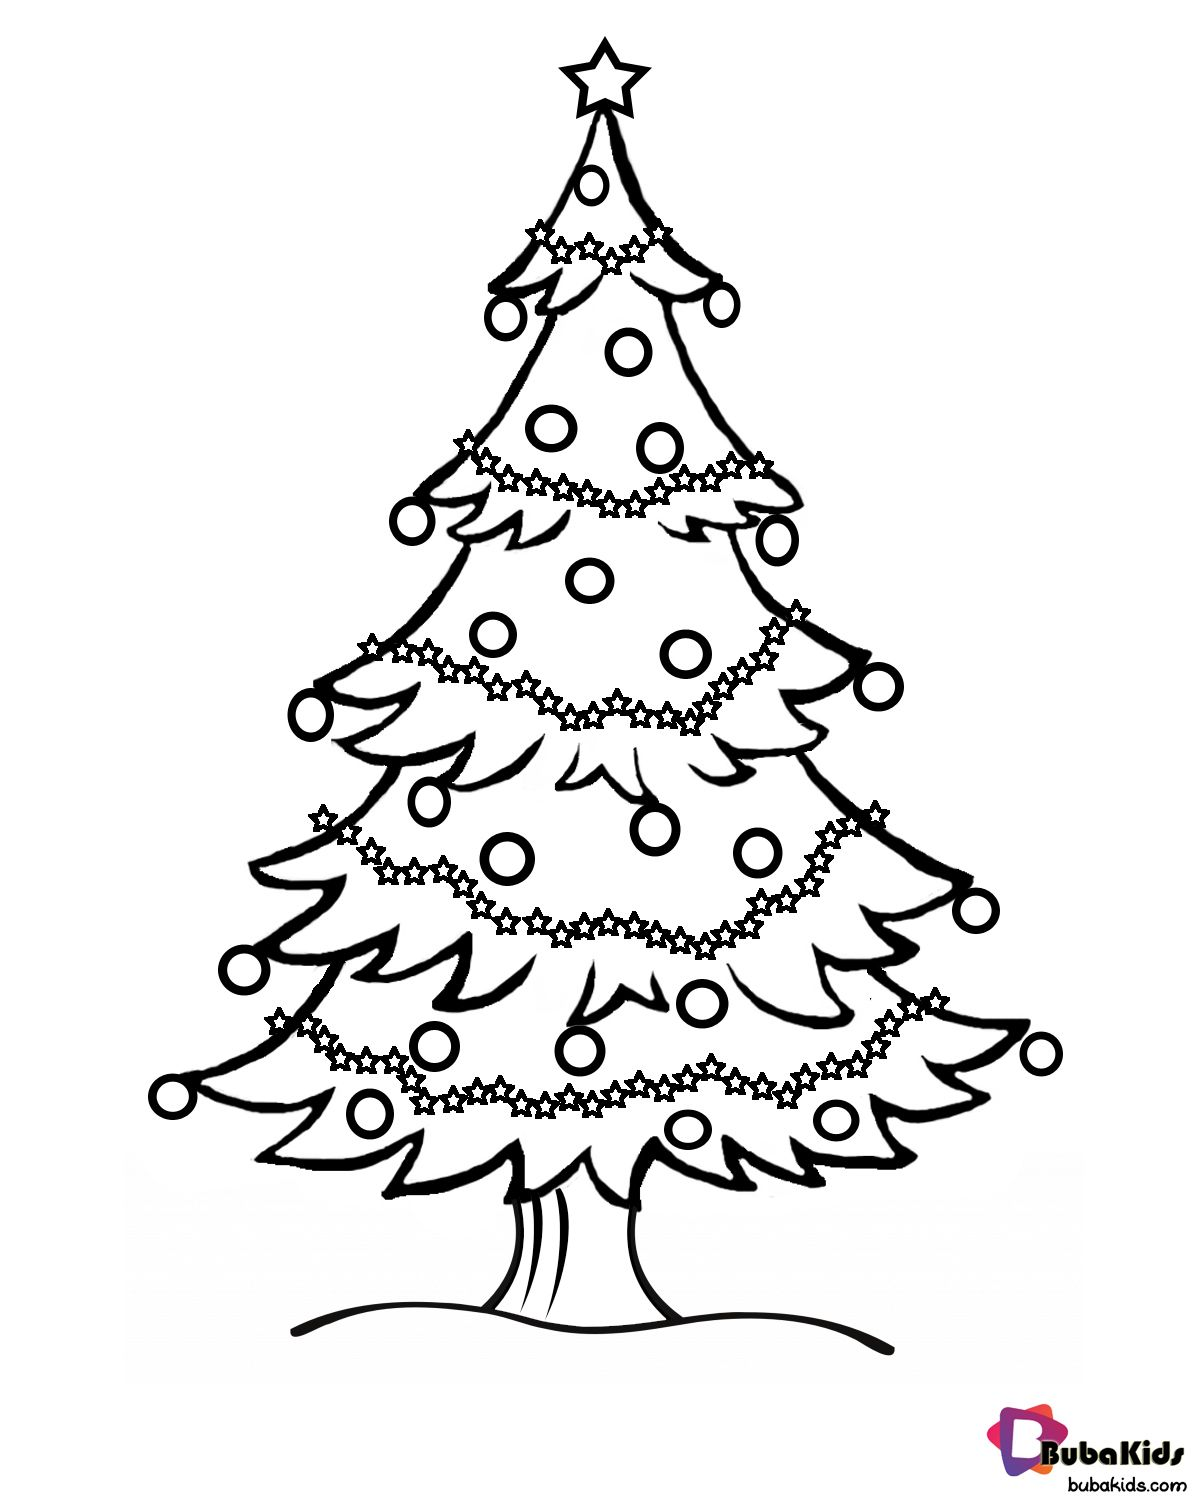 Christmas Tree Free Printable Coloring Page Christmas Tree Coloring Pages Are The Perfect Way To Get Christmas Tree Drawing Tree Drawing For Kids Tree Drawing